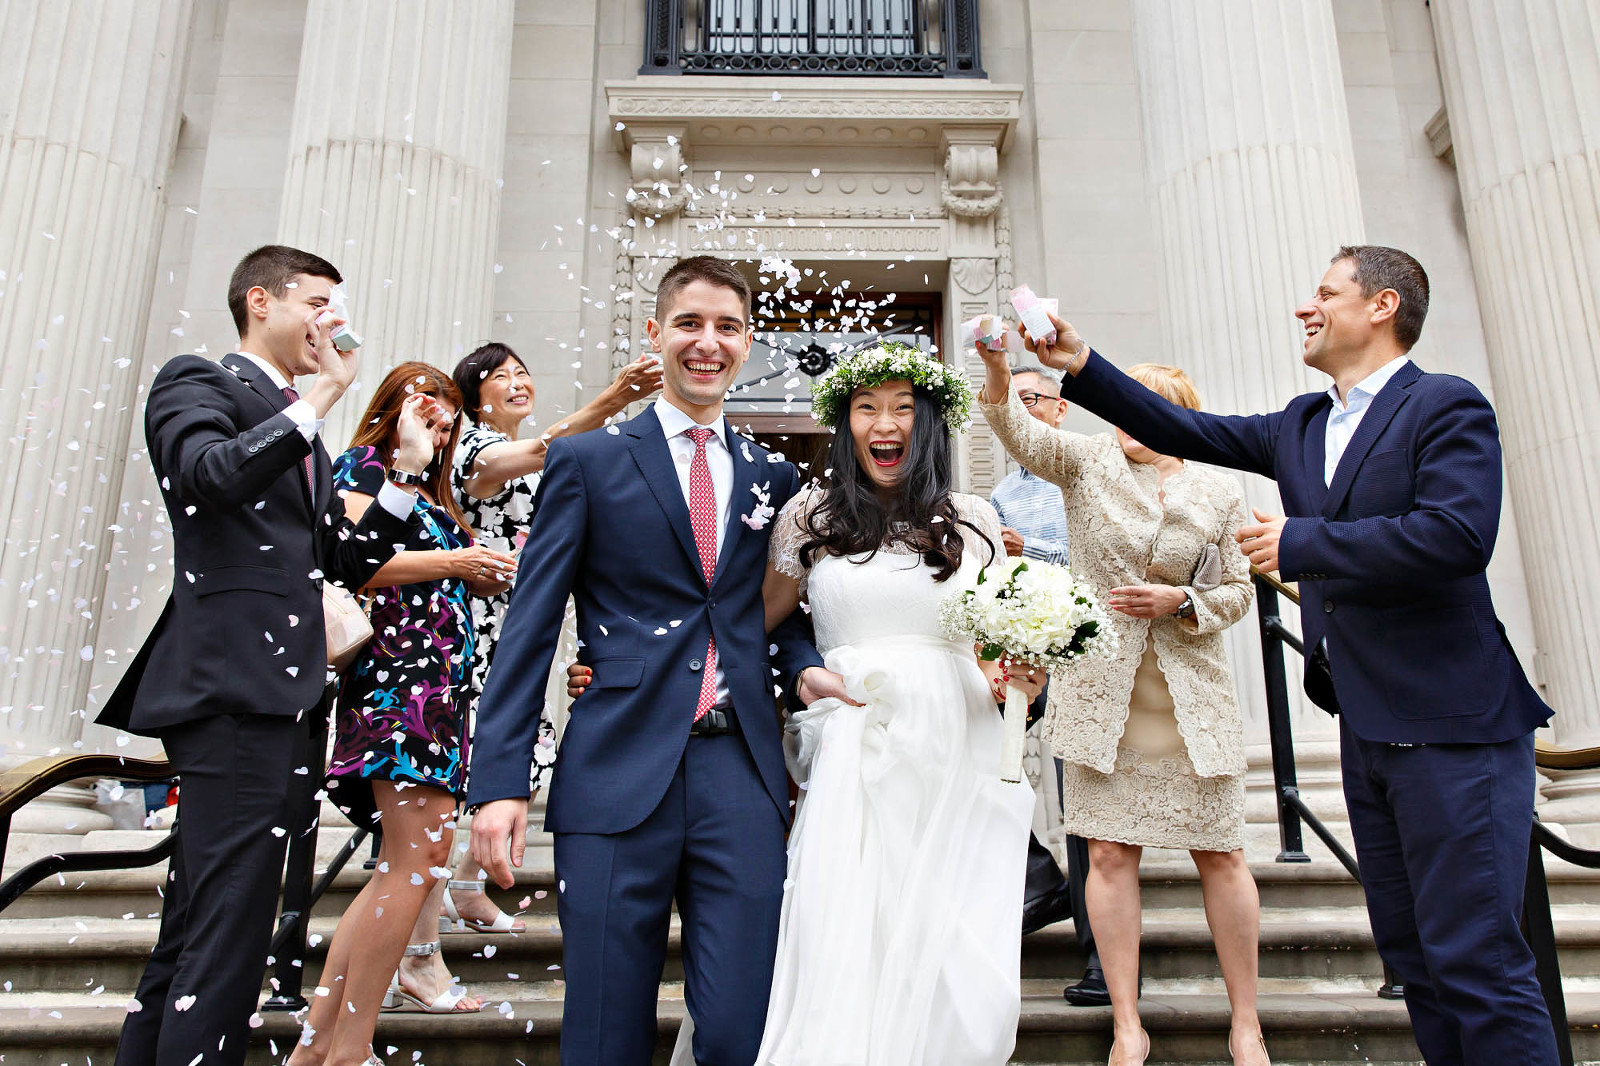 Wedding Photography at The Old Marylebone Town Hall